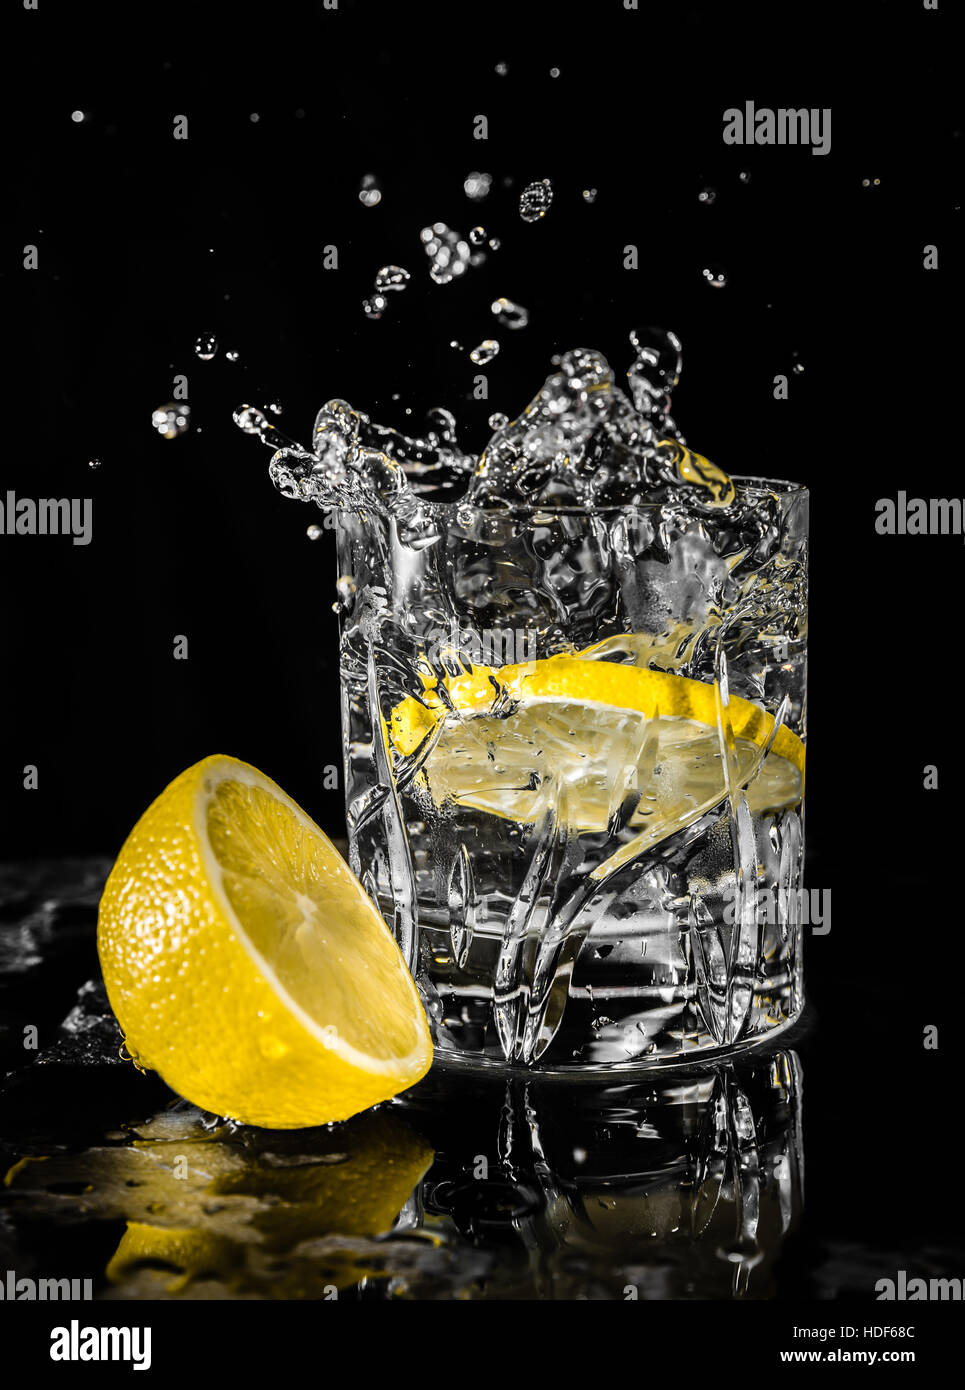 Cold Drink - Stock Image